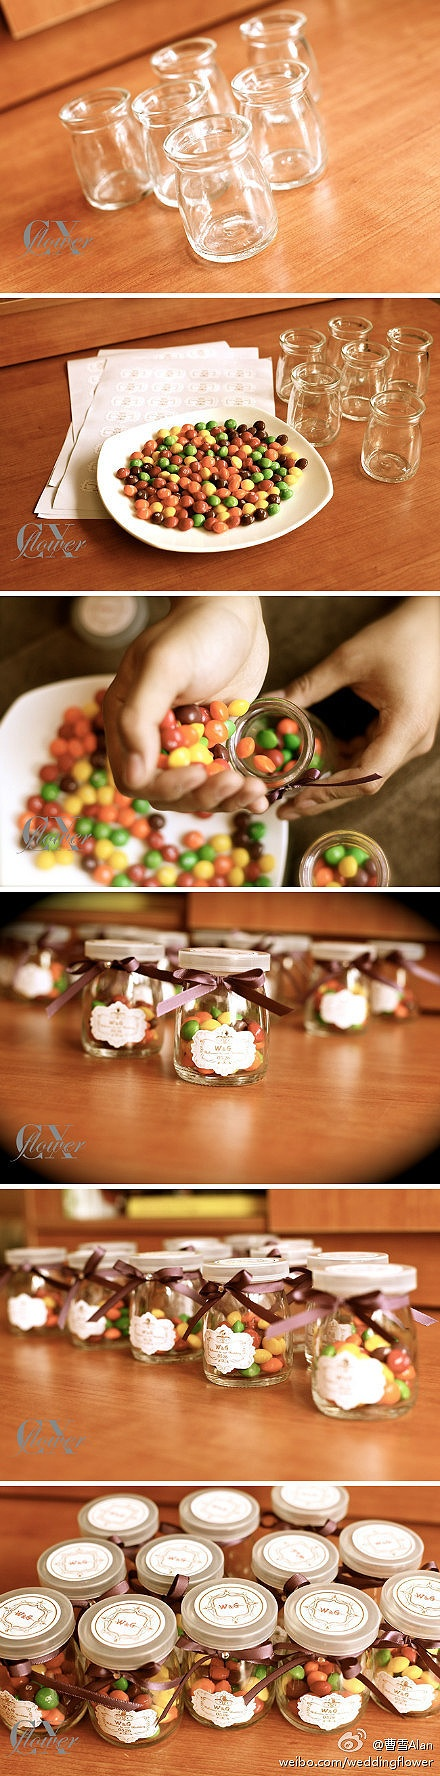 Candy Gift Idea!